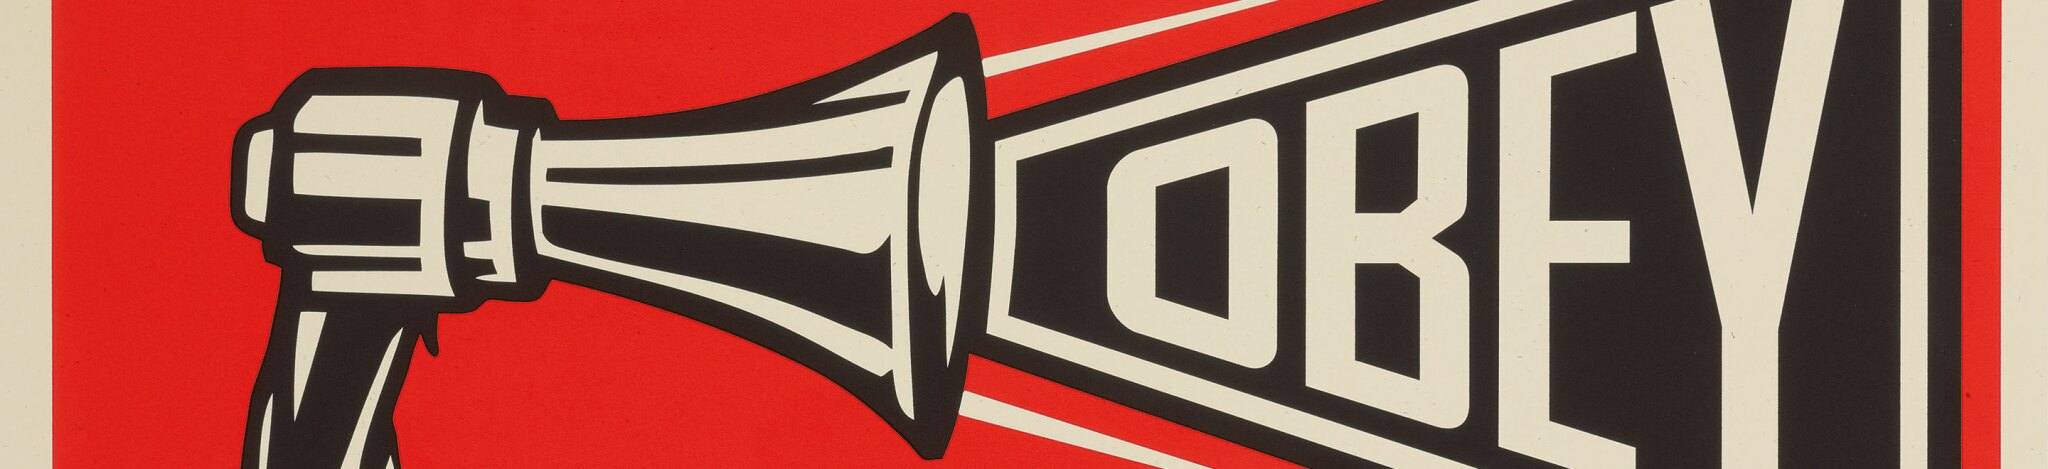 Politically Charged: The Prints of Shepard Fairey